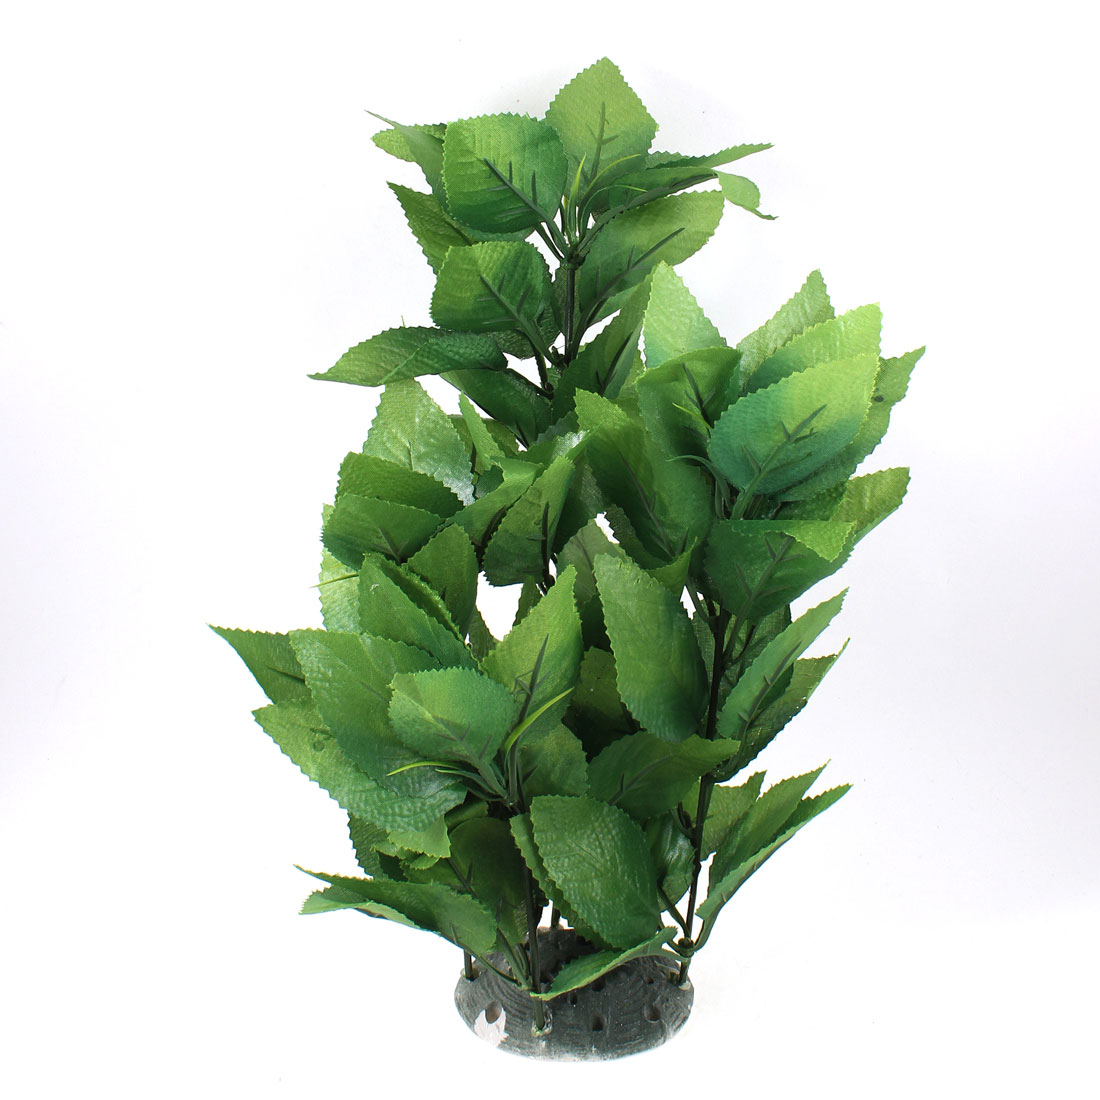 "13.1"" Height Aquascaping Green Fabric Plastic Plant for Aquarium Tank"